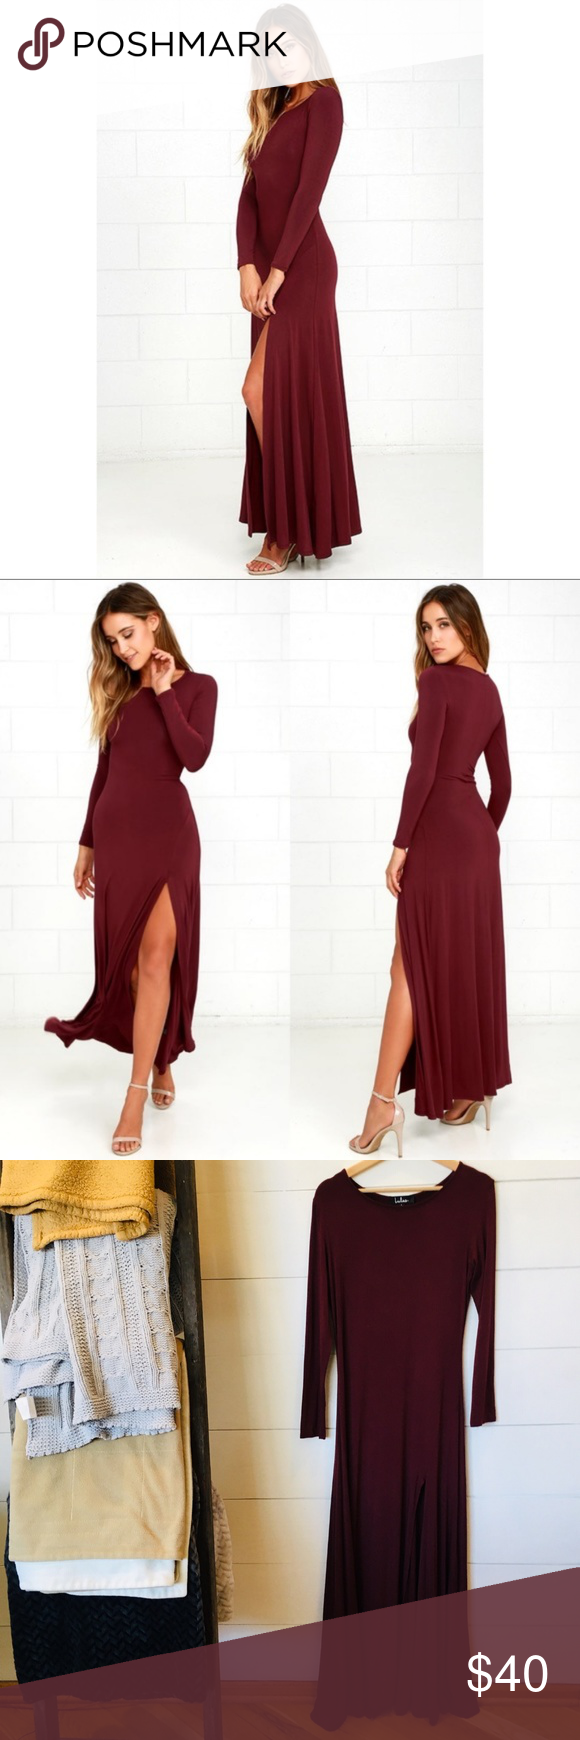 b05c6eeb0fe LULUS Swept Away Burgundy Maxi Dress w  High Slit Excellent used condition  and from a